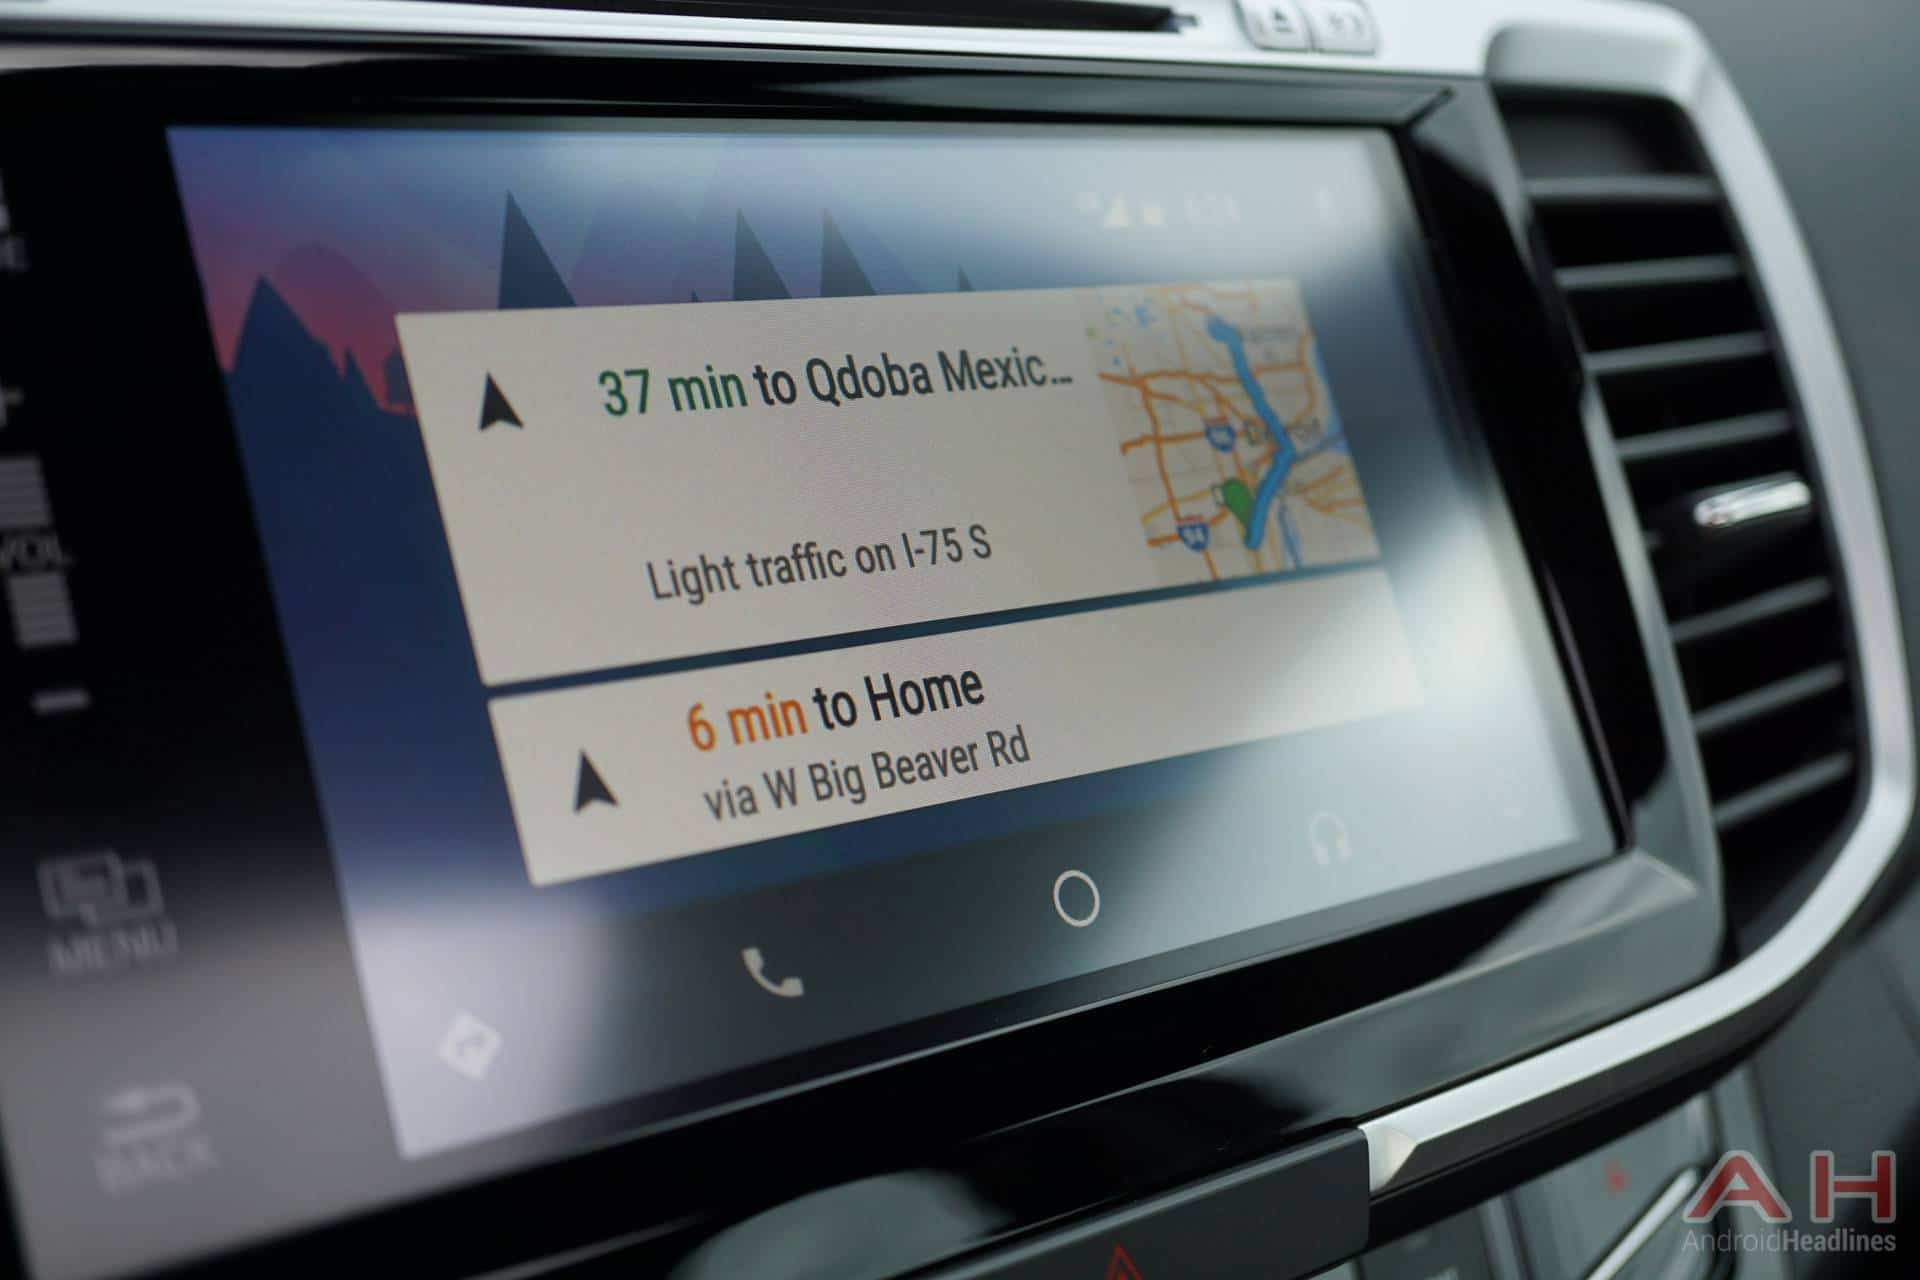 Download: Android Auto v2.0 With Home Screen Shortcuts | Androidheadlines.com